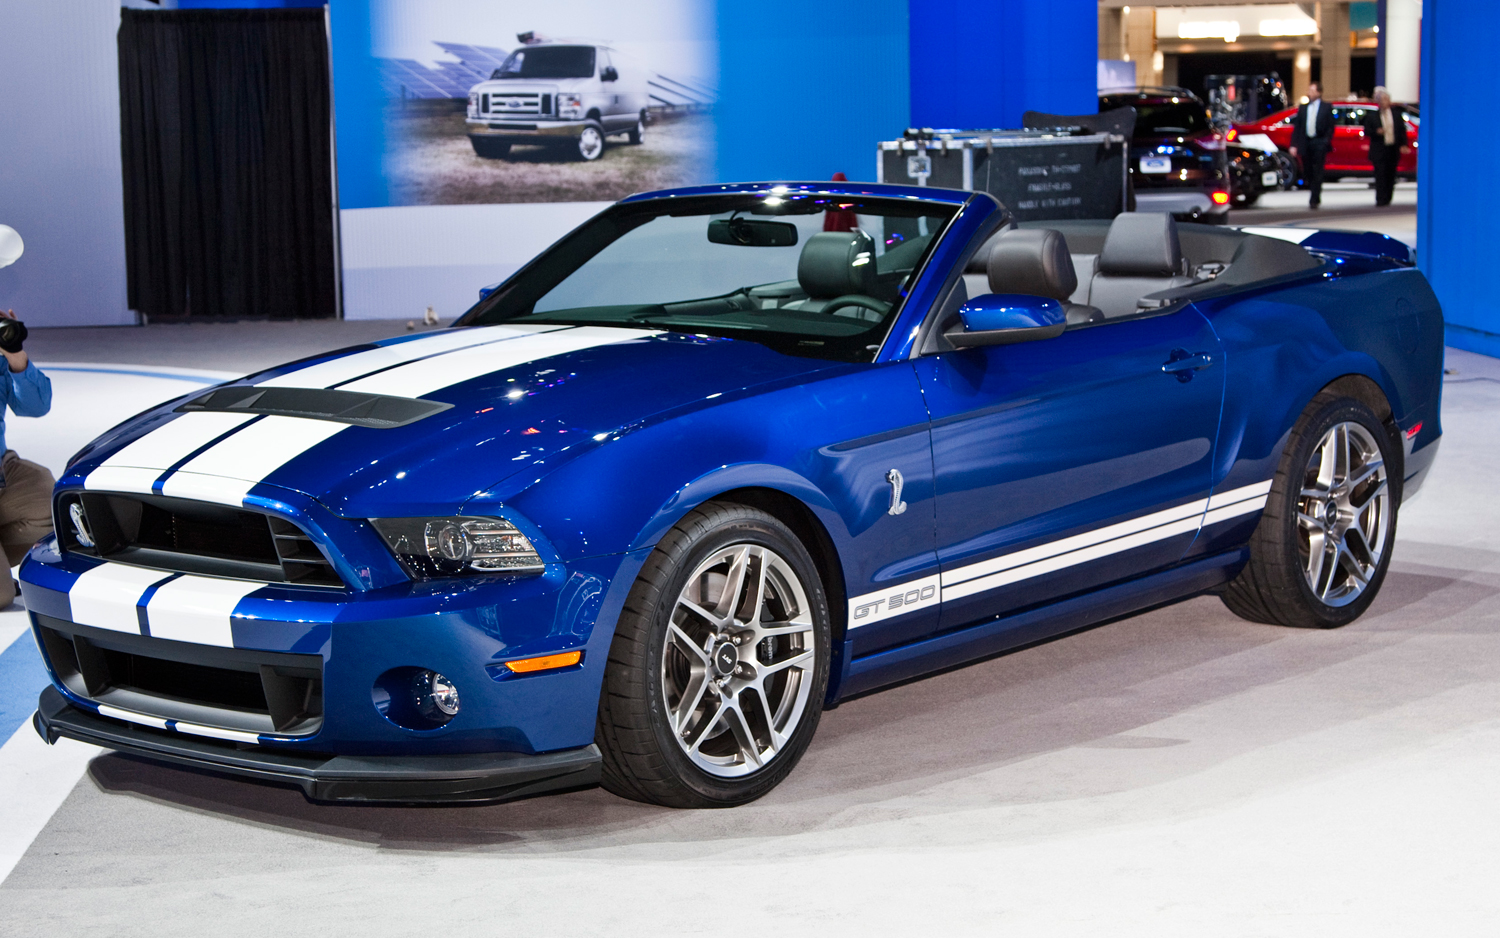 2013 ford shelby gt500 convertible 650 horsepower